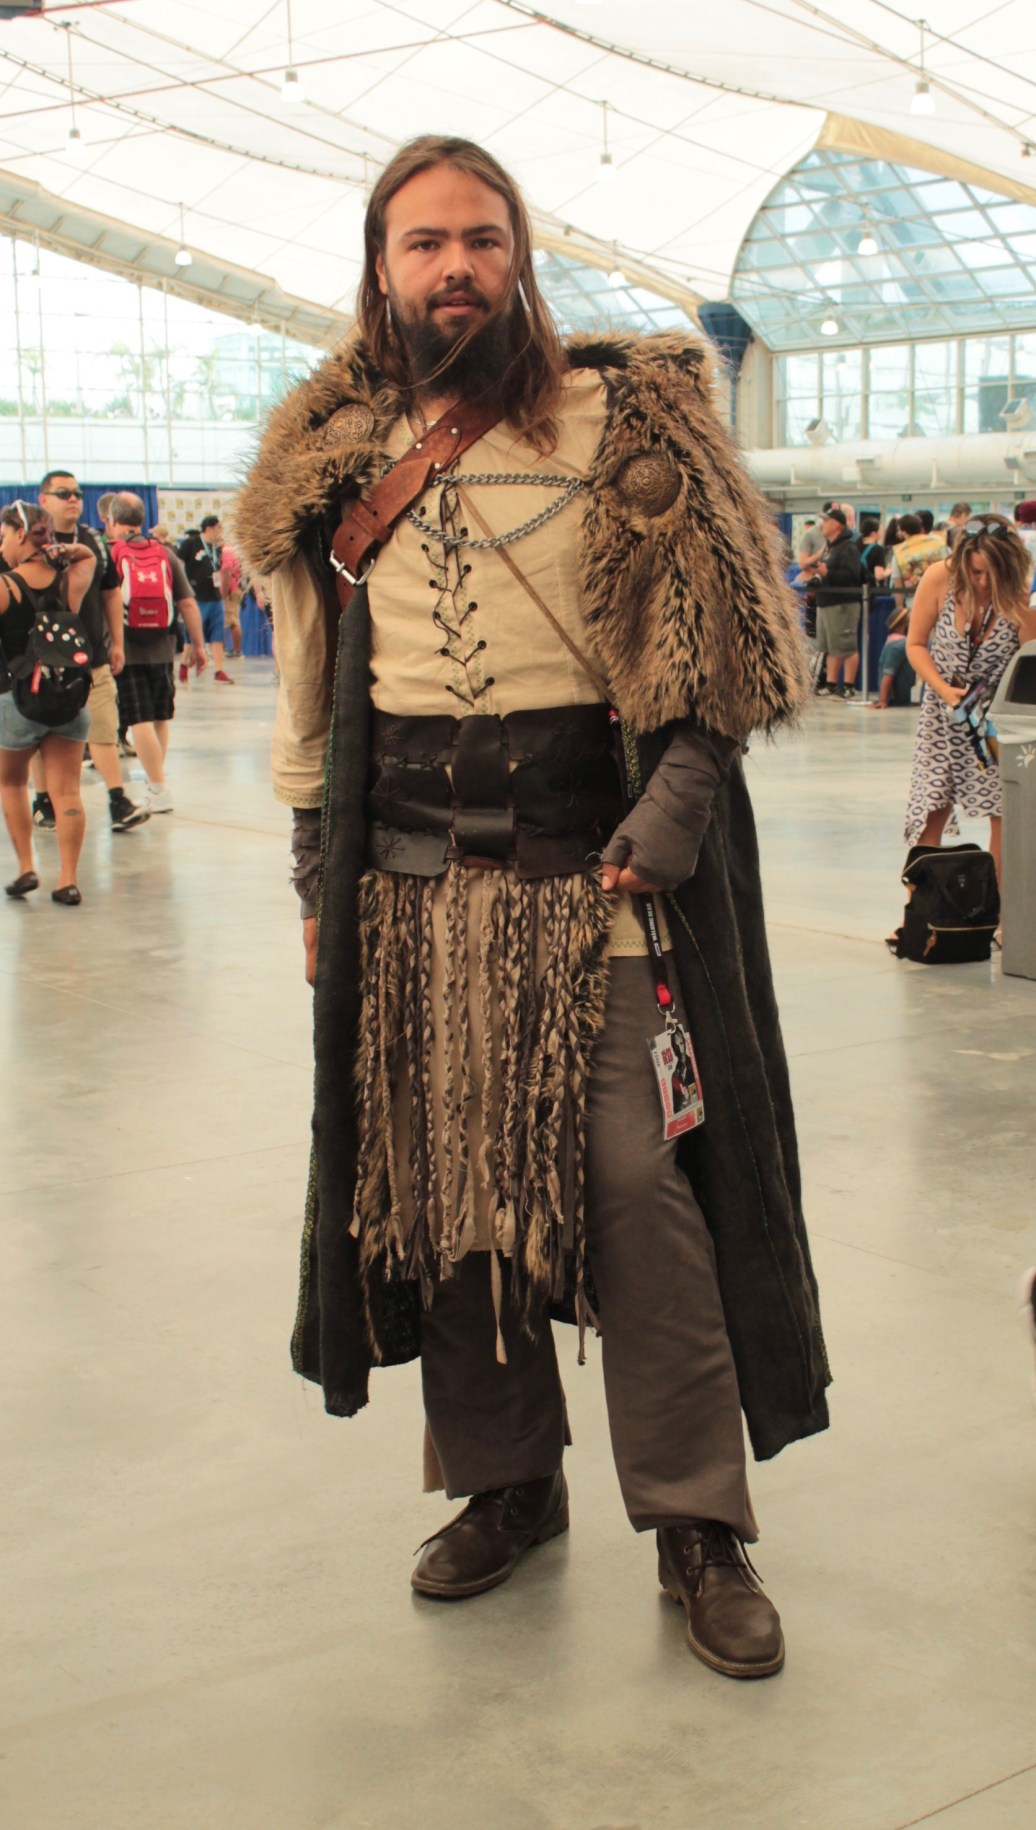 Character dressed as John Snow from Game of Thrones